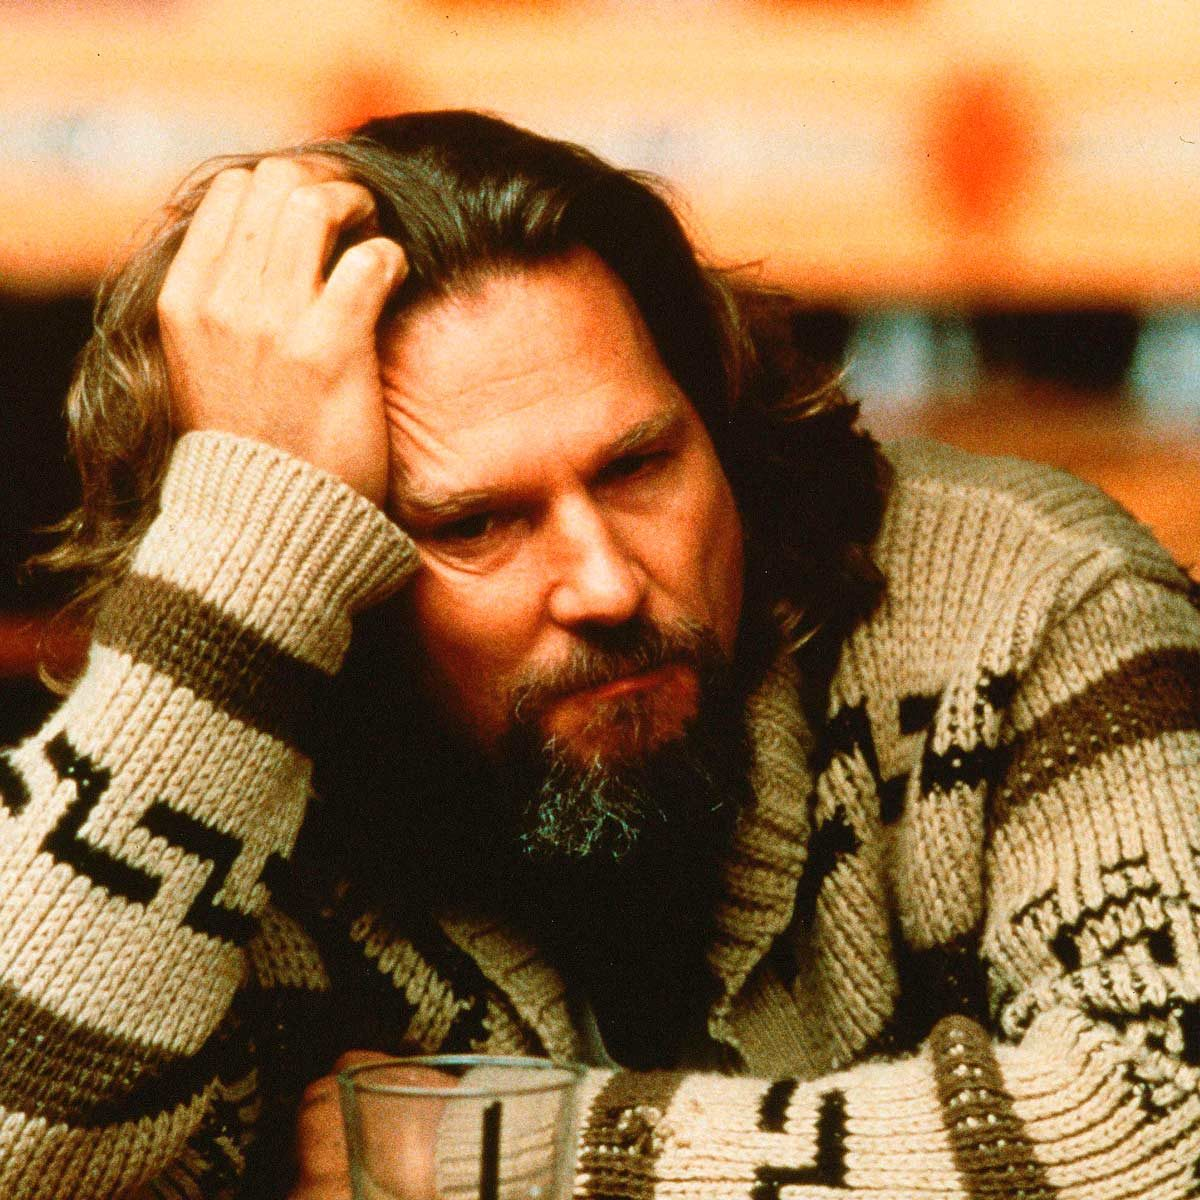 Jeff Bridges as The Dude from The Big Lebowski